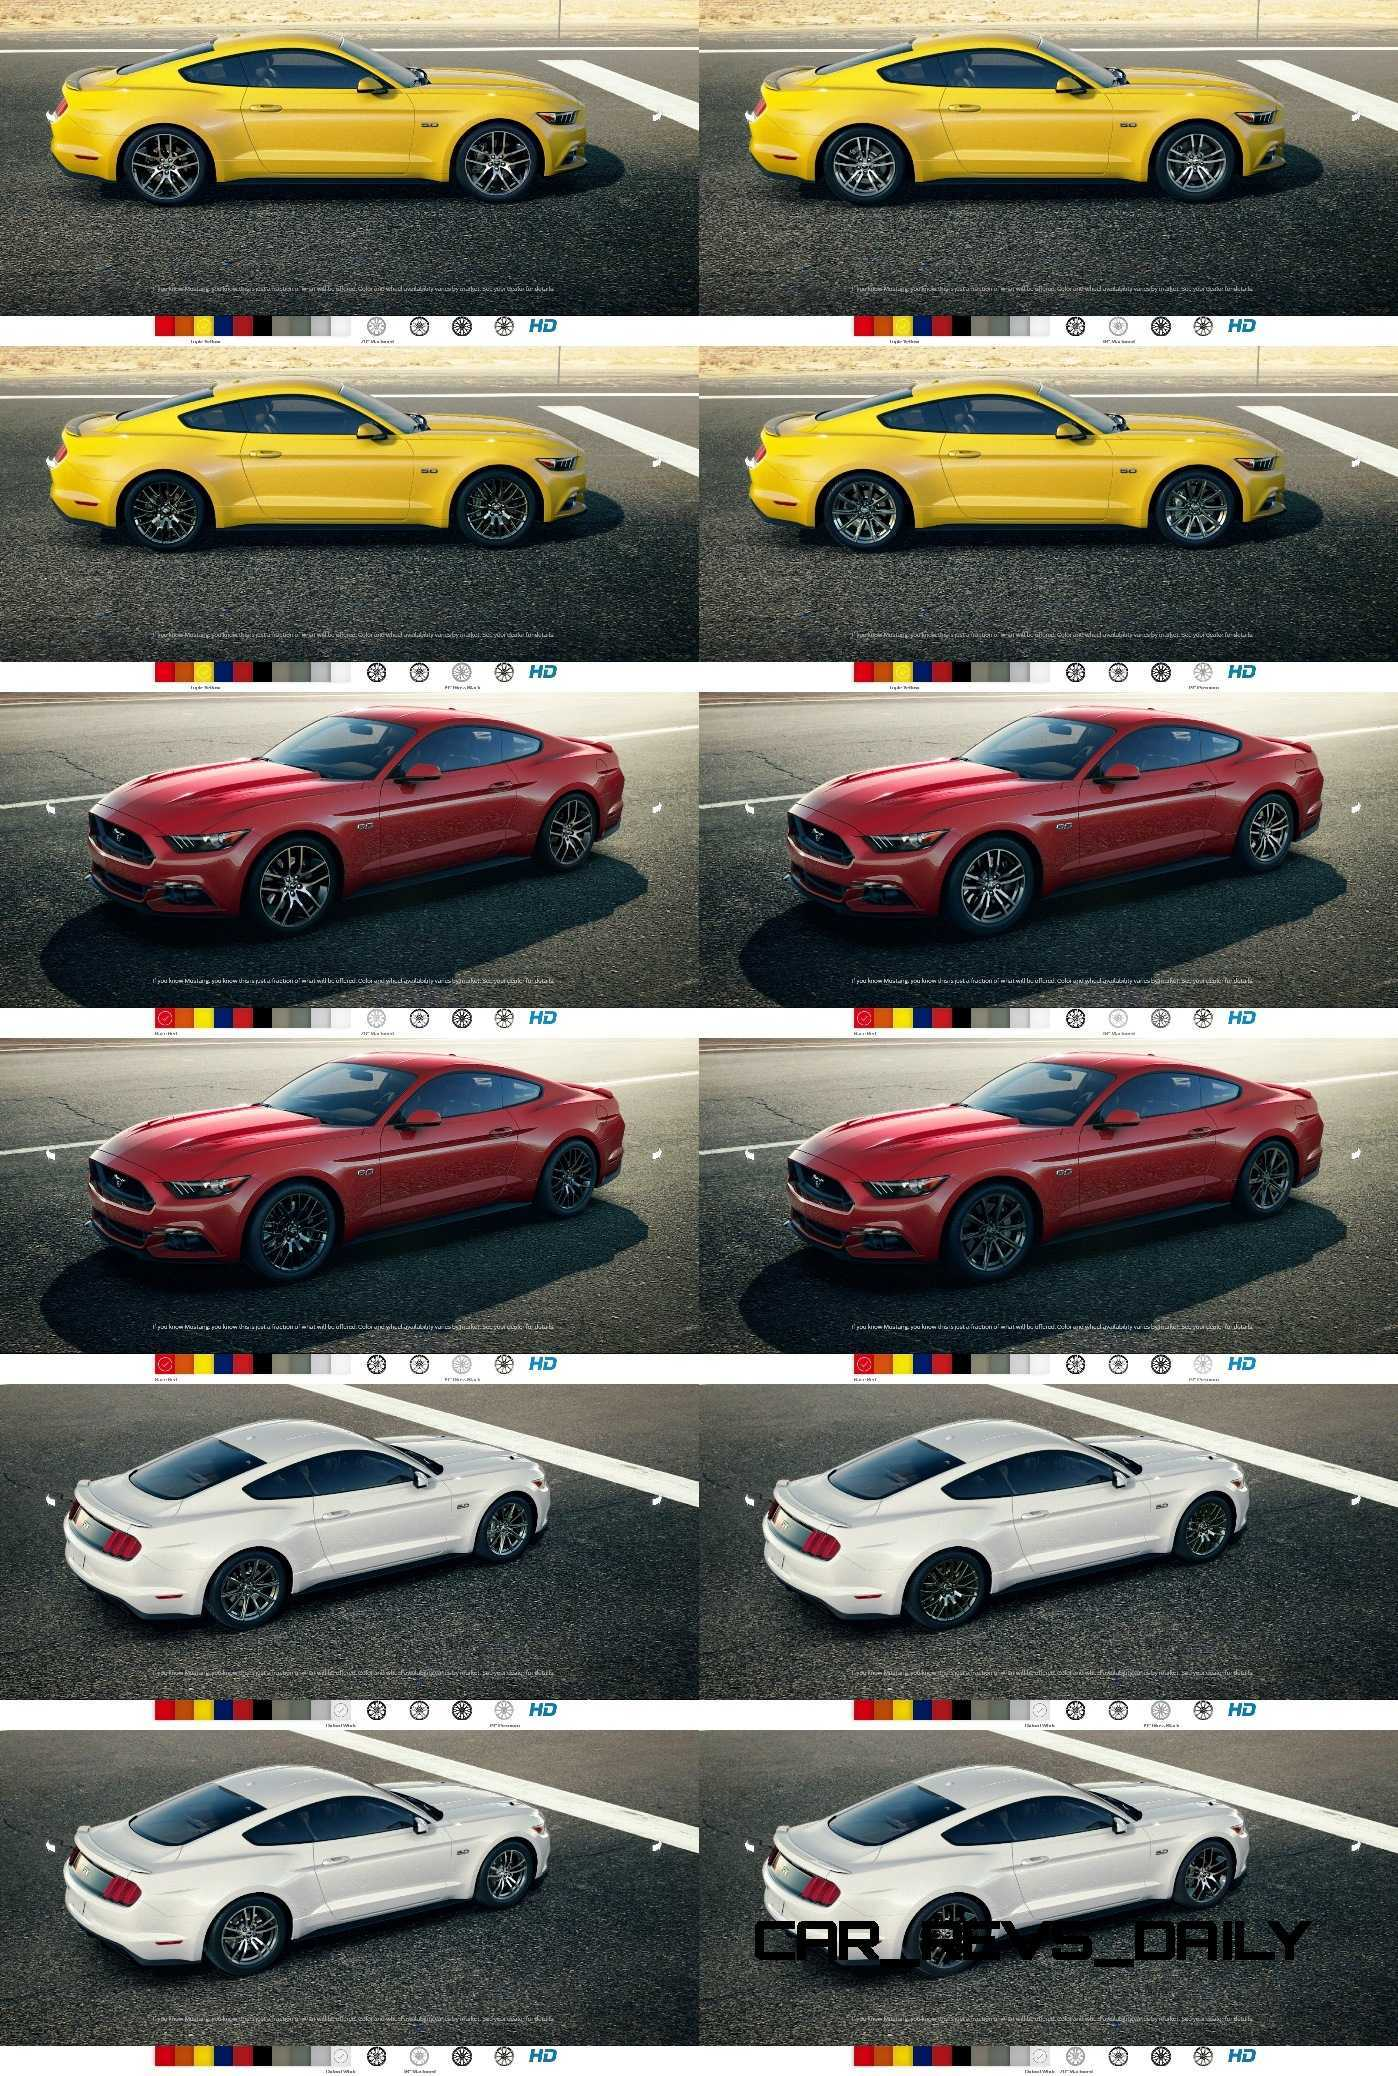 2015 Ford Mustang Colors and Wheel Visualizer